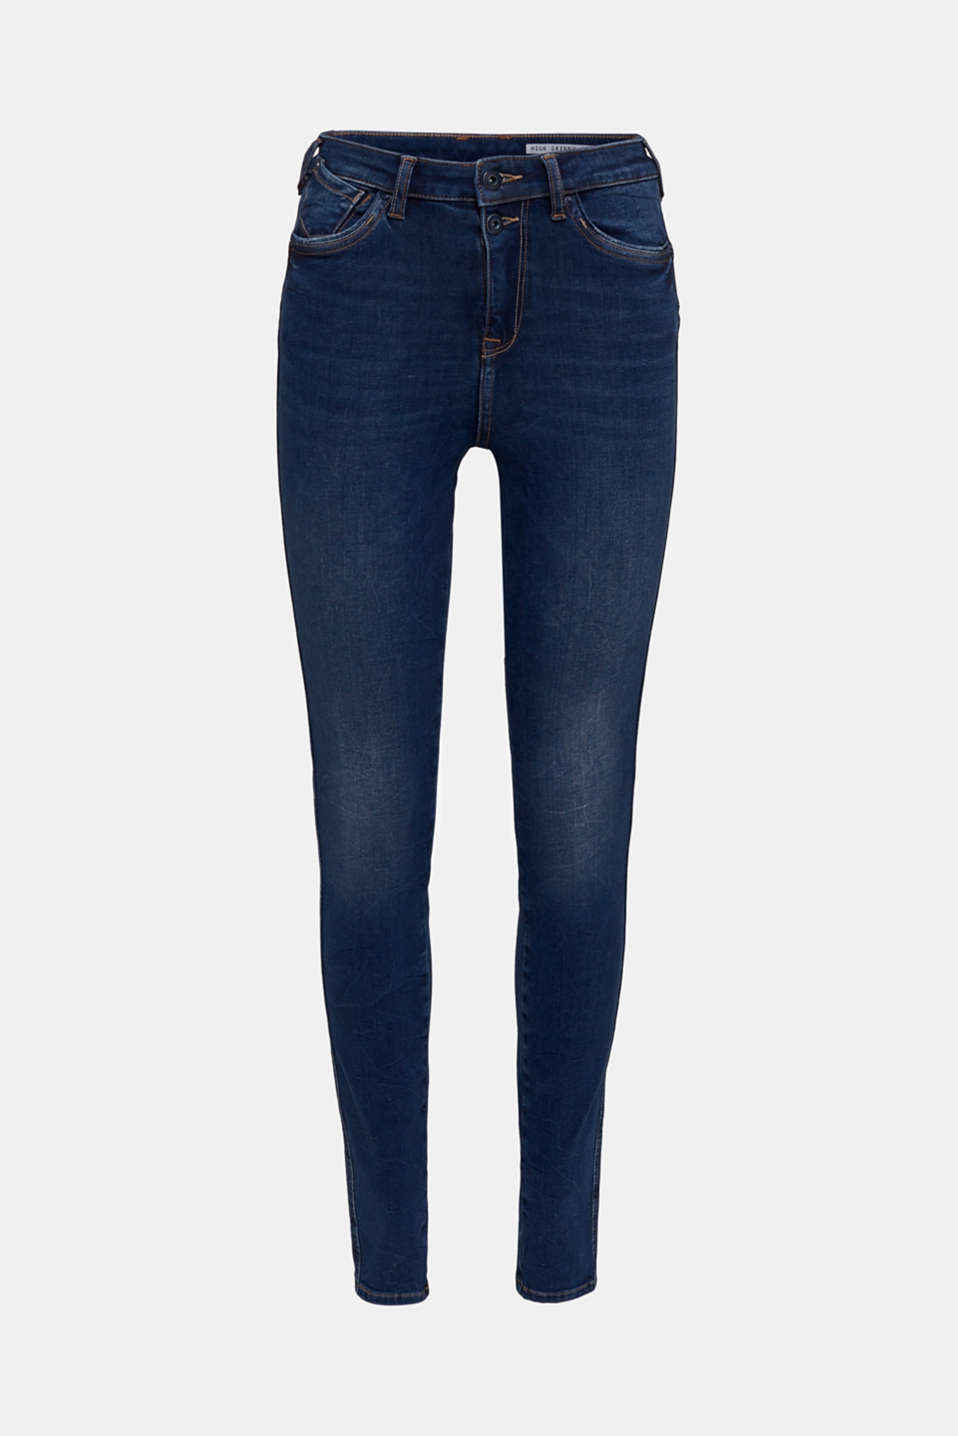 With TENCEL™: Shaping jeans in a double button design, BLUE DARK WASH, detail image number 7